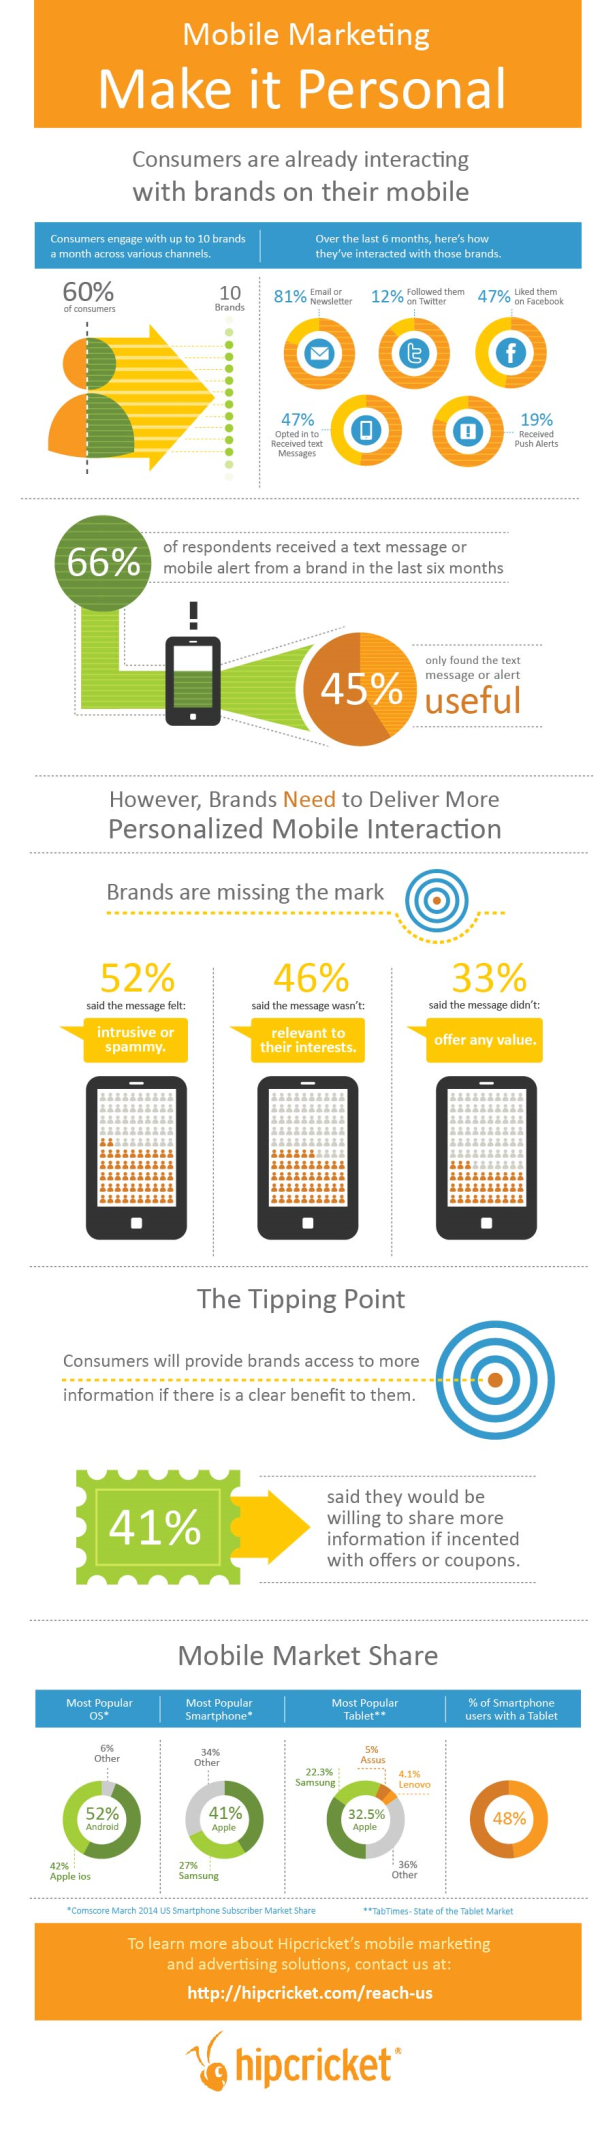 mobile-marketing-personal-infographic